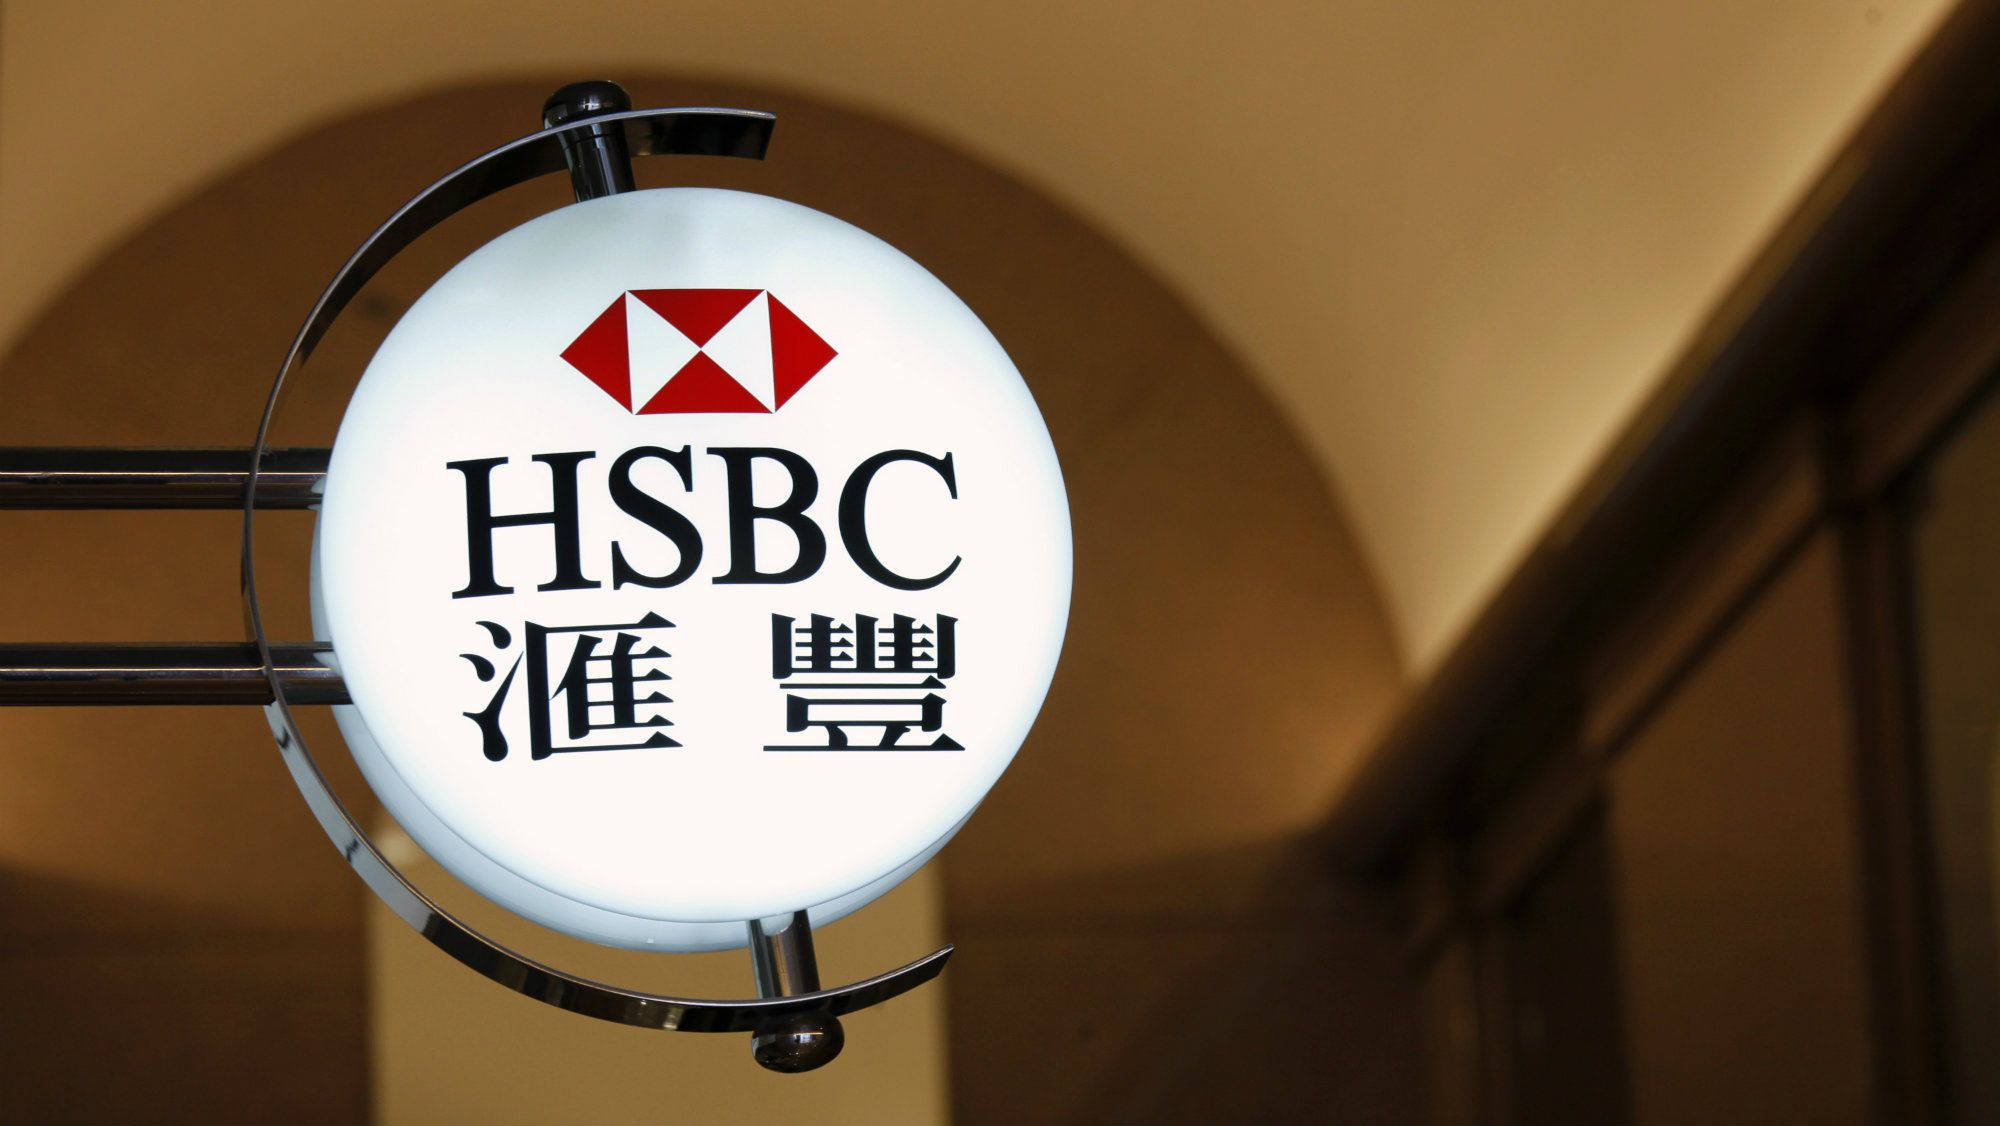 HSBC's headquarters dilemma: Higher taxes in London or